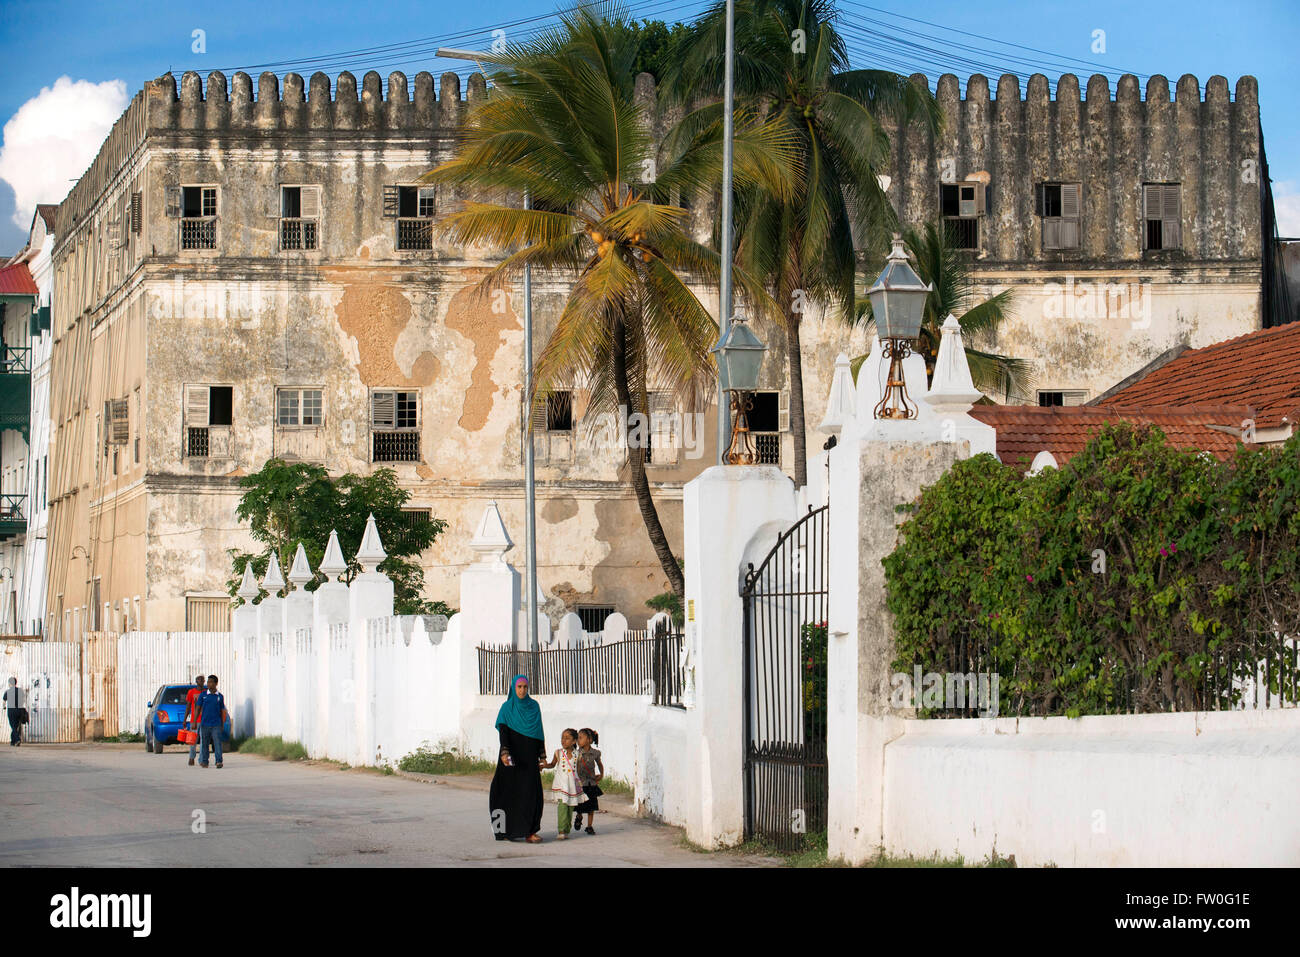 The Sultan's Palace on Stone Town, Zanzibar, Tanzania. - Stock Image